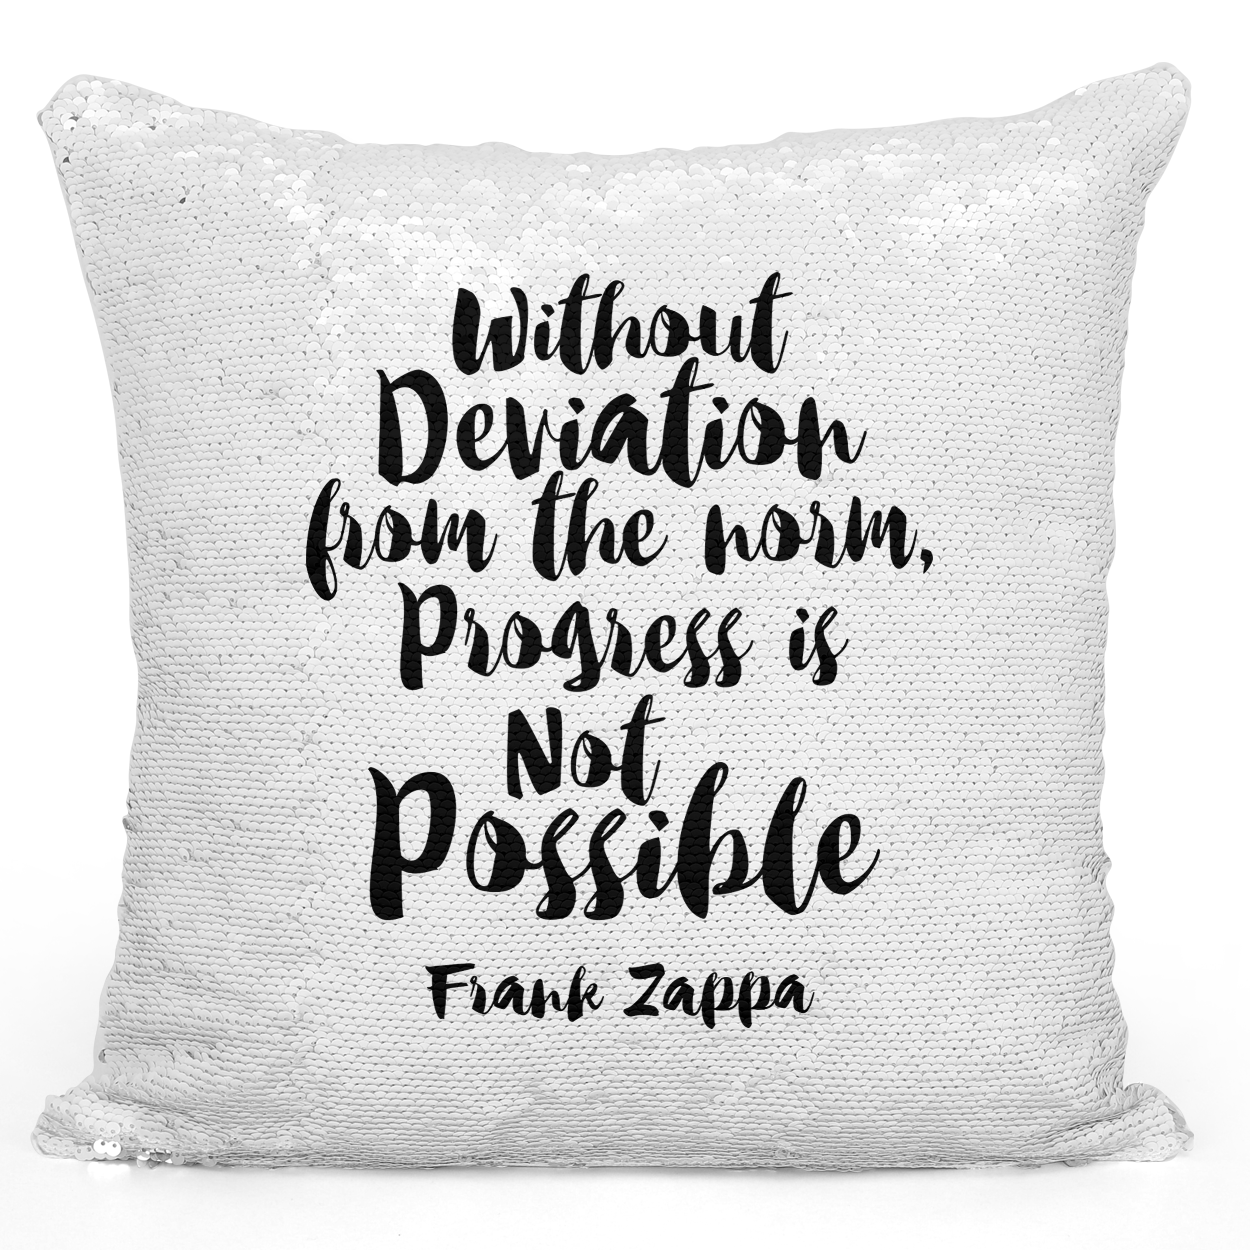 16x16 inch Sequin Throw Pillow Magic Flip Pillow Without Daviation Progress Is Impossible Quote Pillow Loud Universe